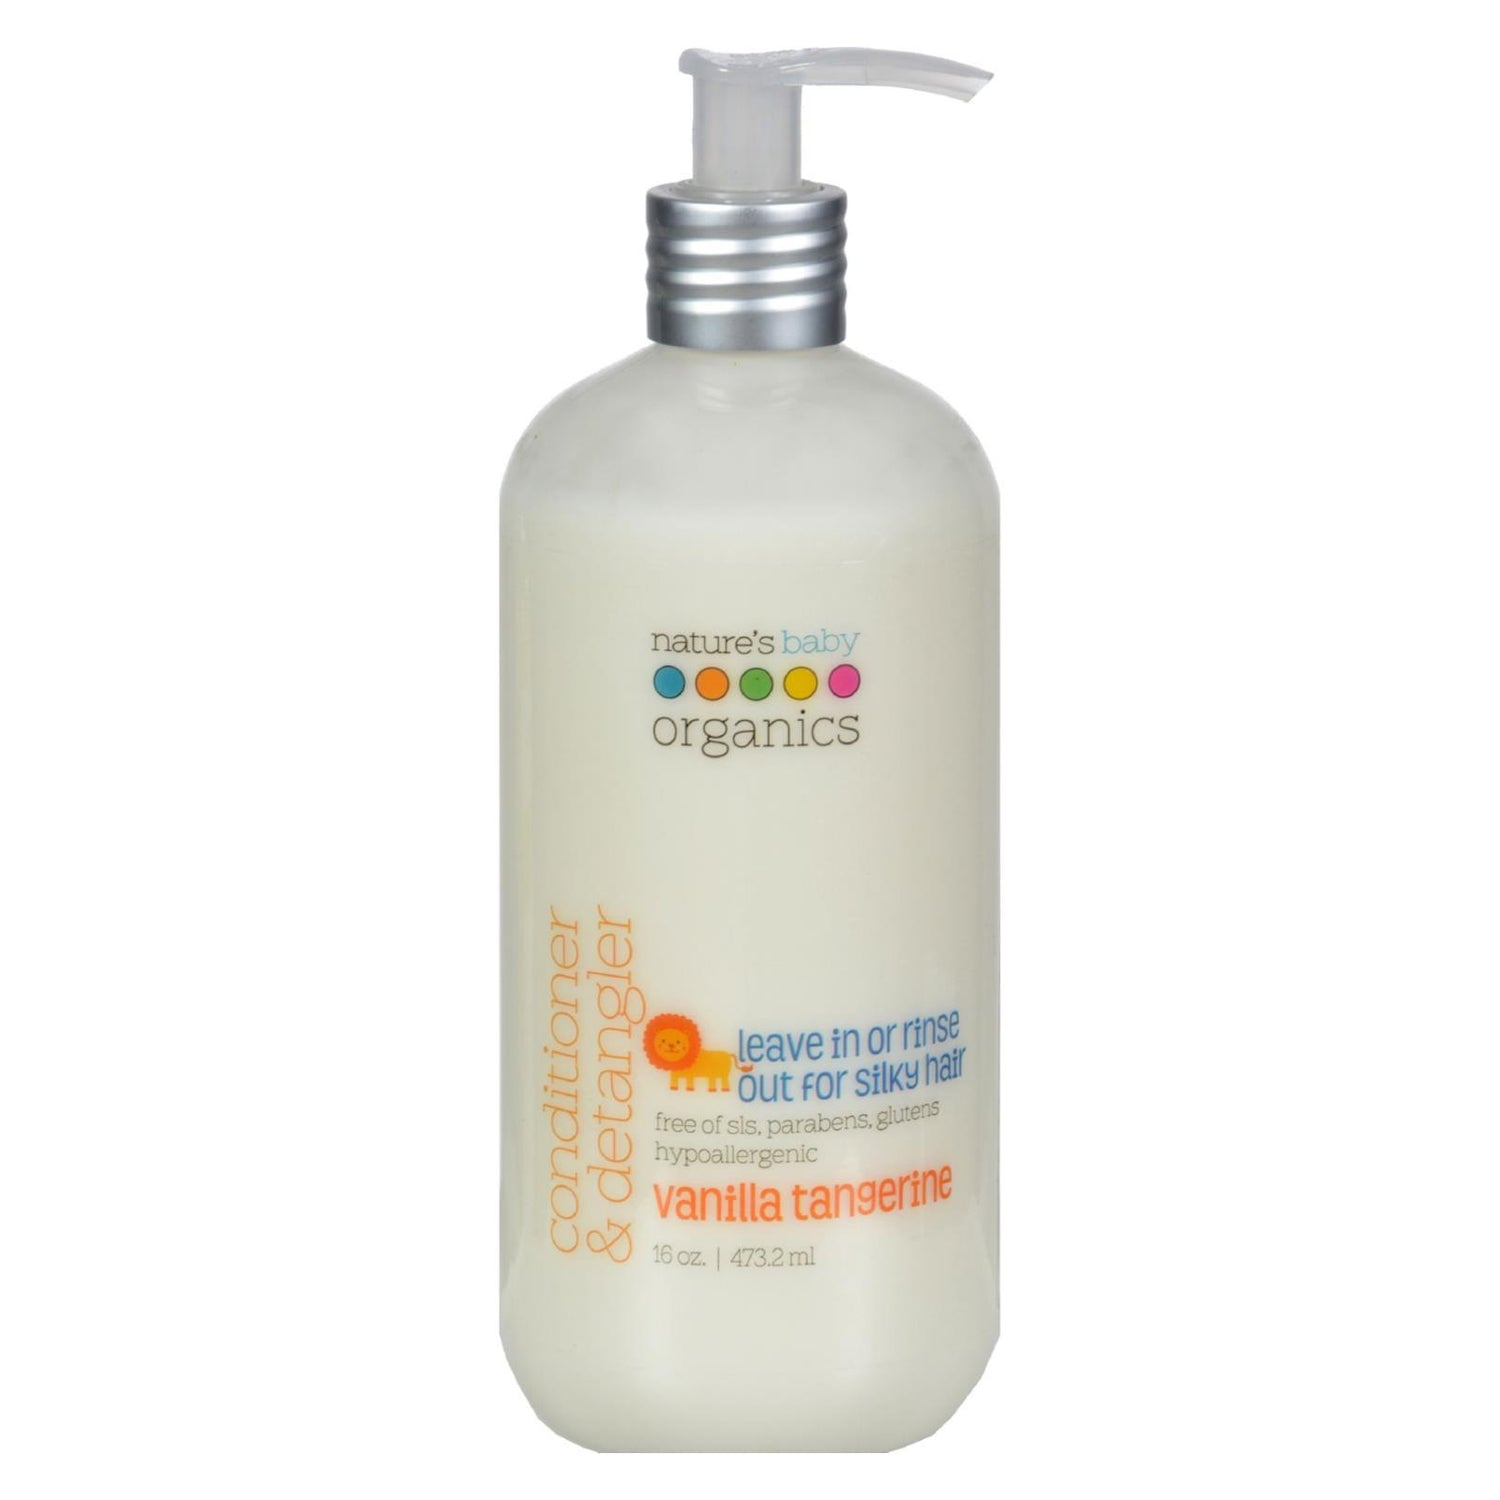 Nature's Baby Organics Conditioner And Detangler Vanilla Tangerine - 16 Fl Oz